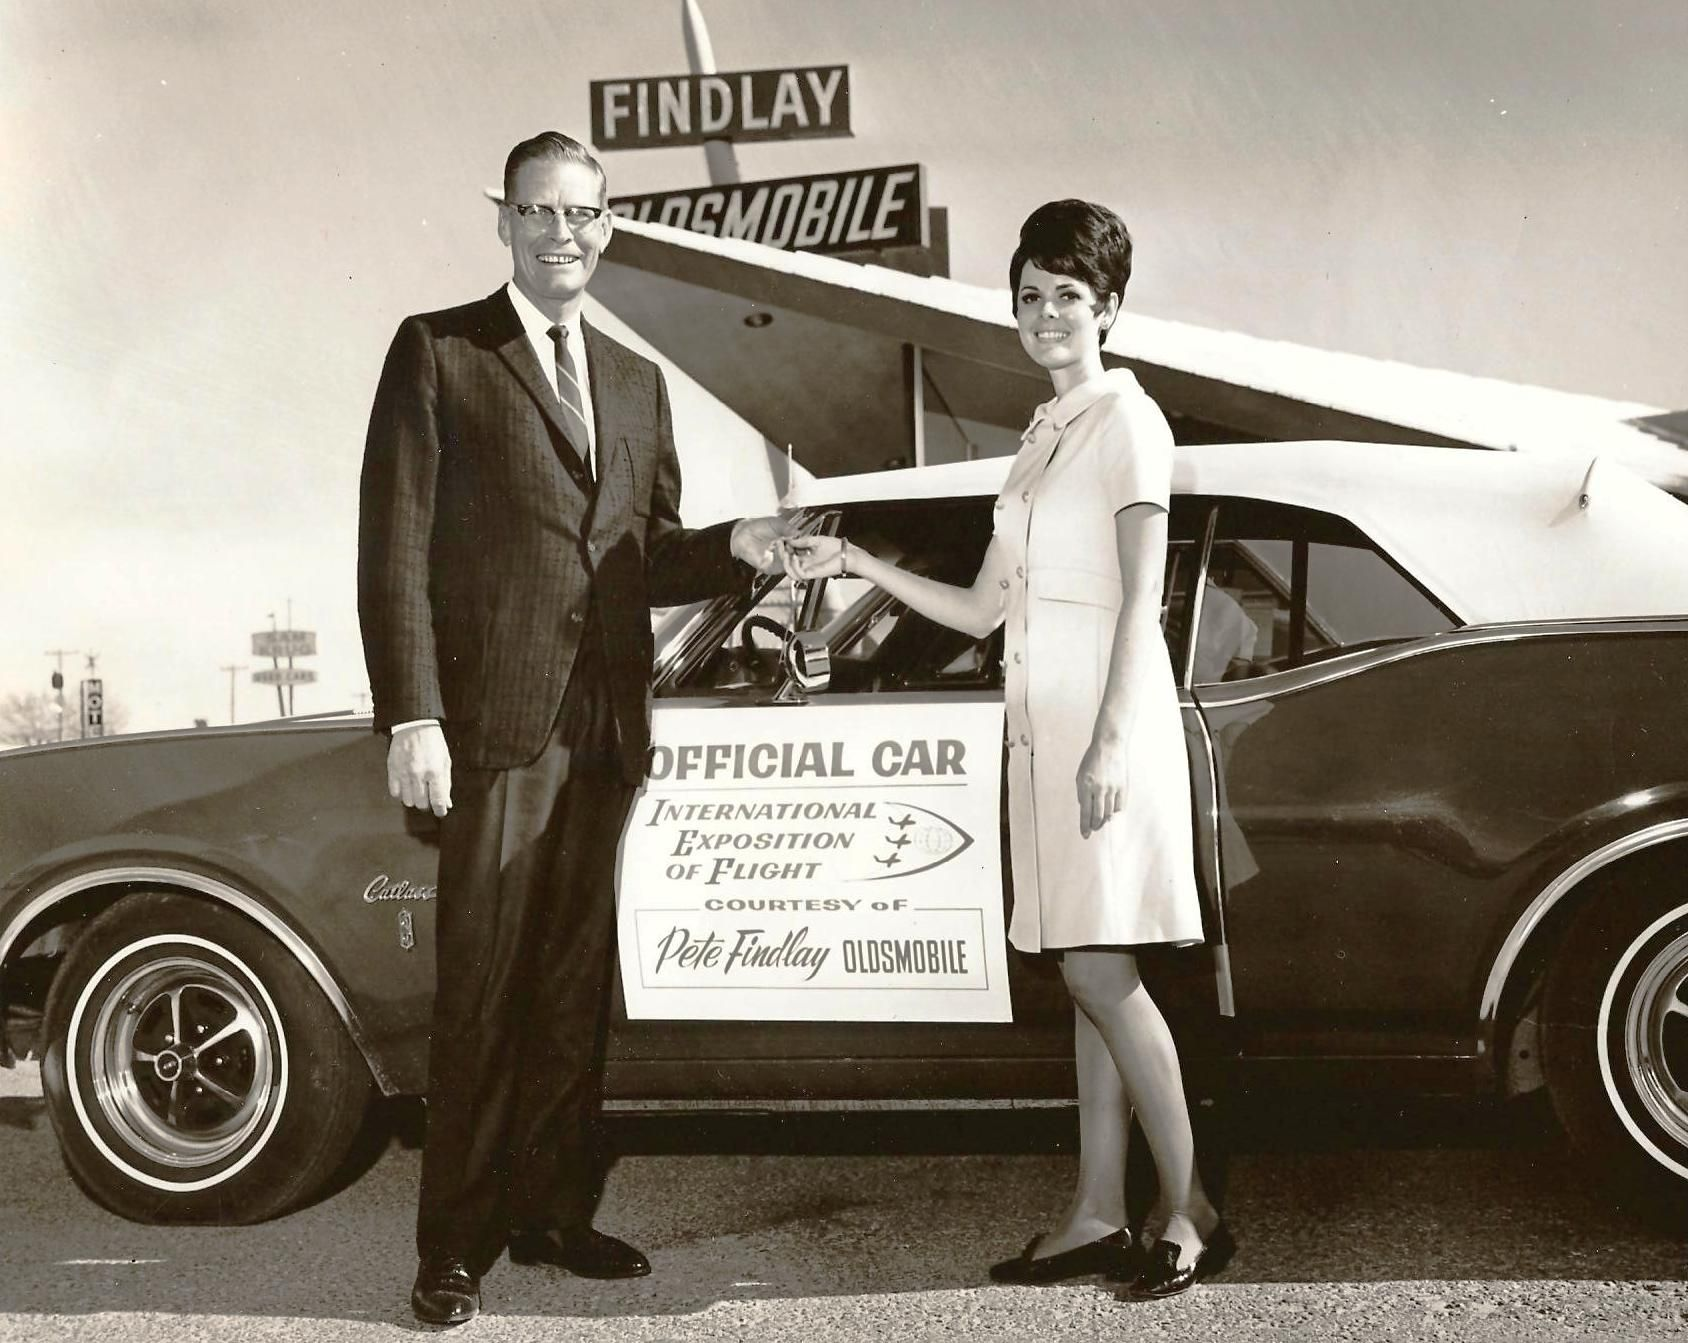 In 1968 Danny Kaye Was Honorary Chairman Of The Las Vegas